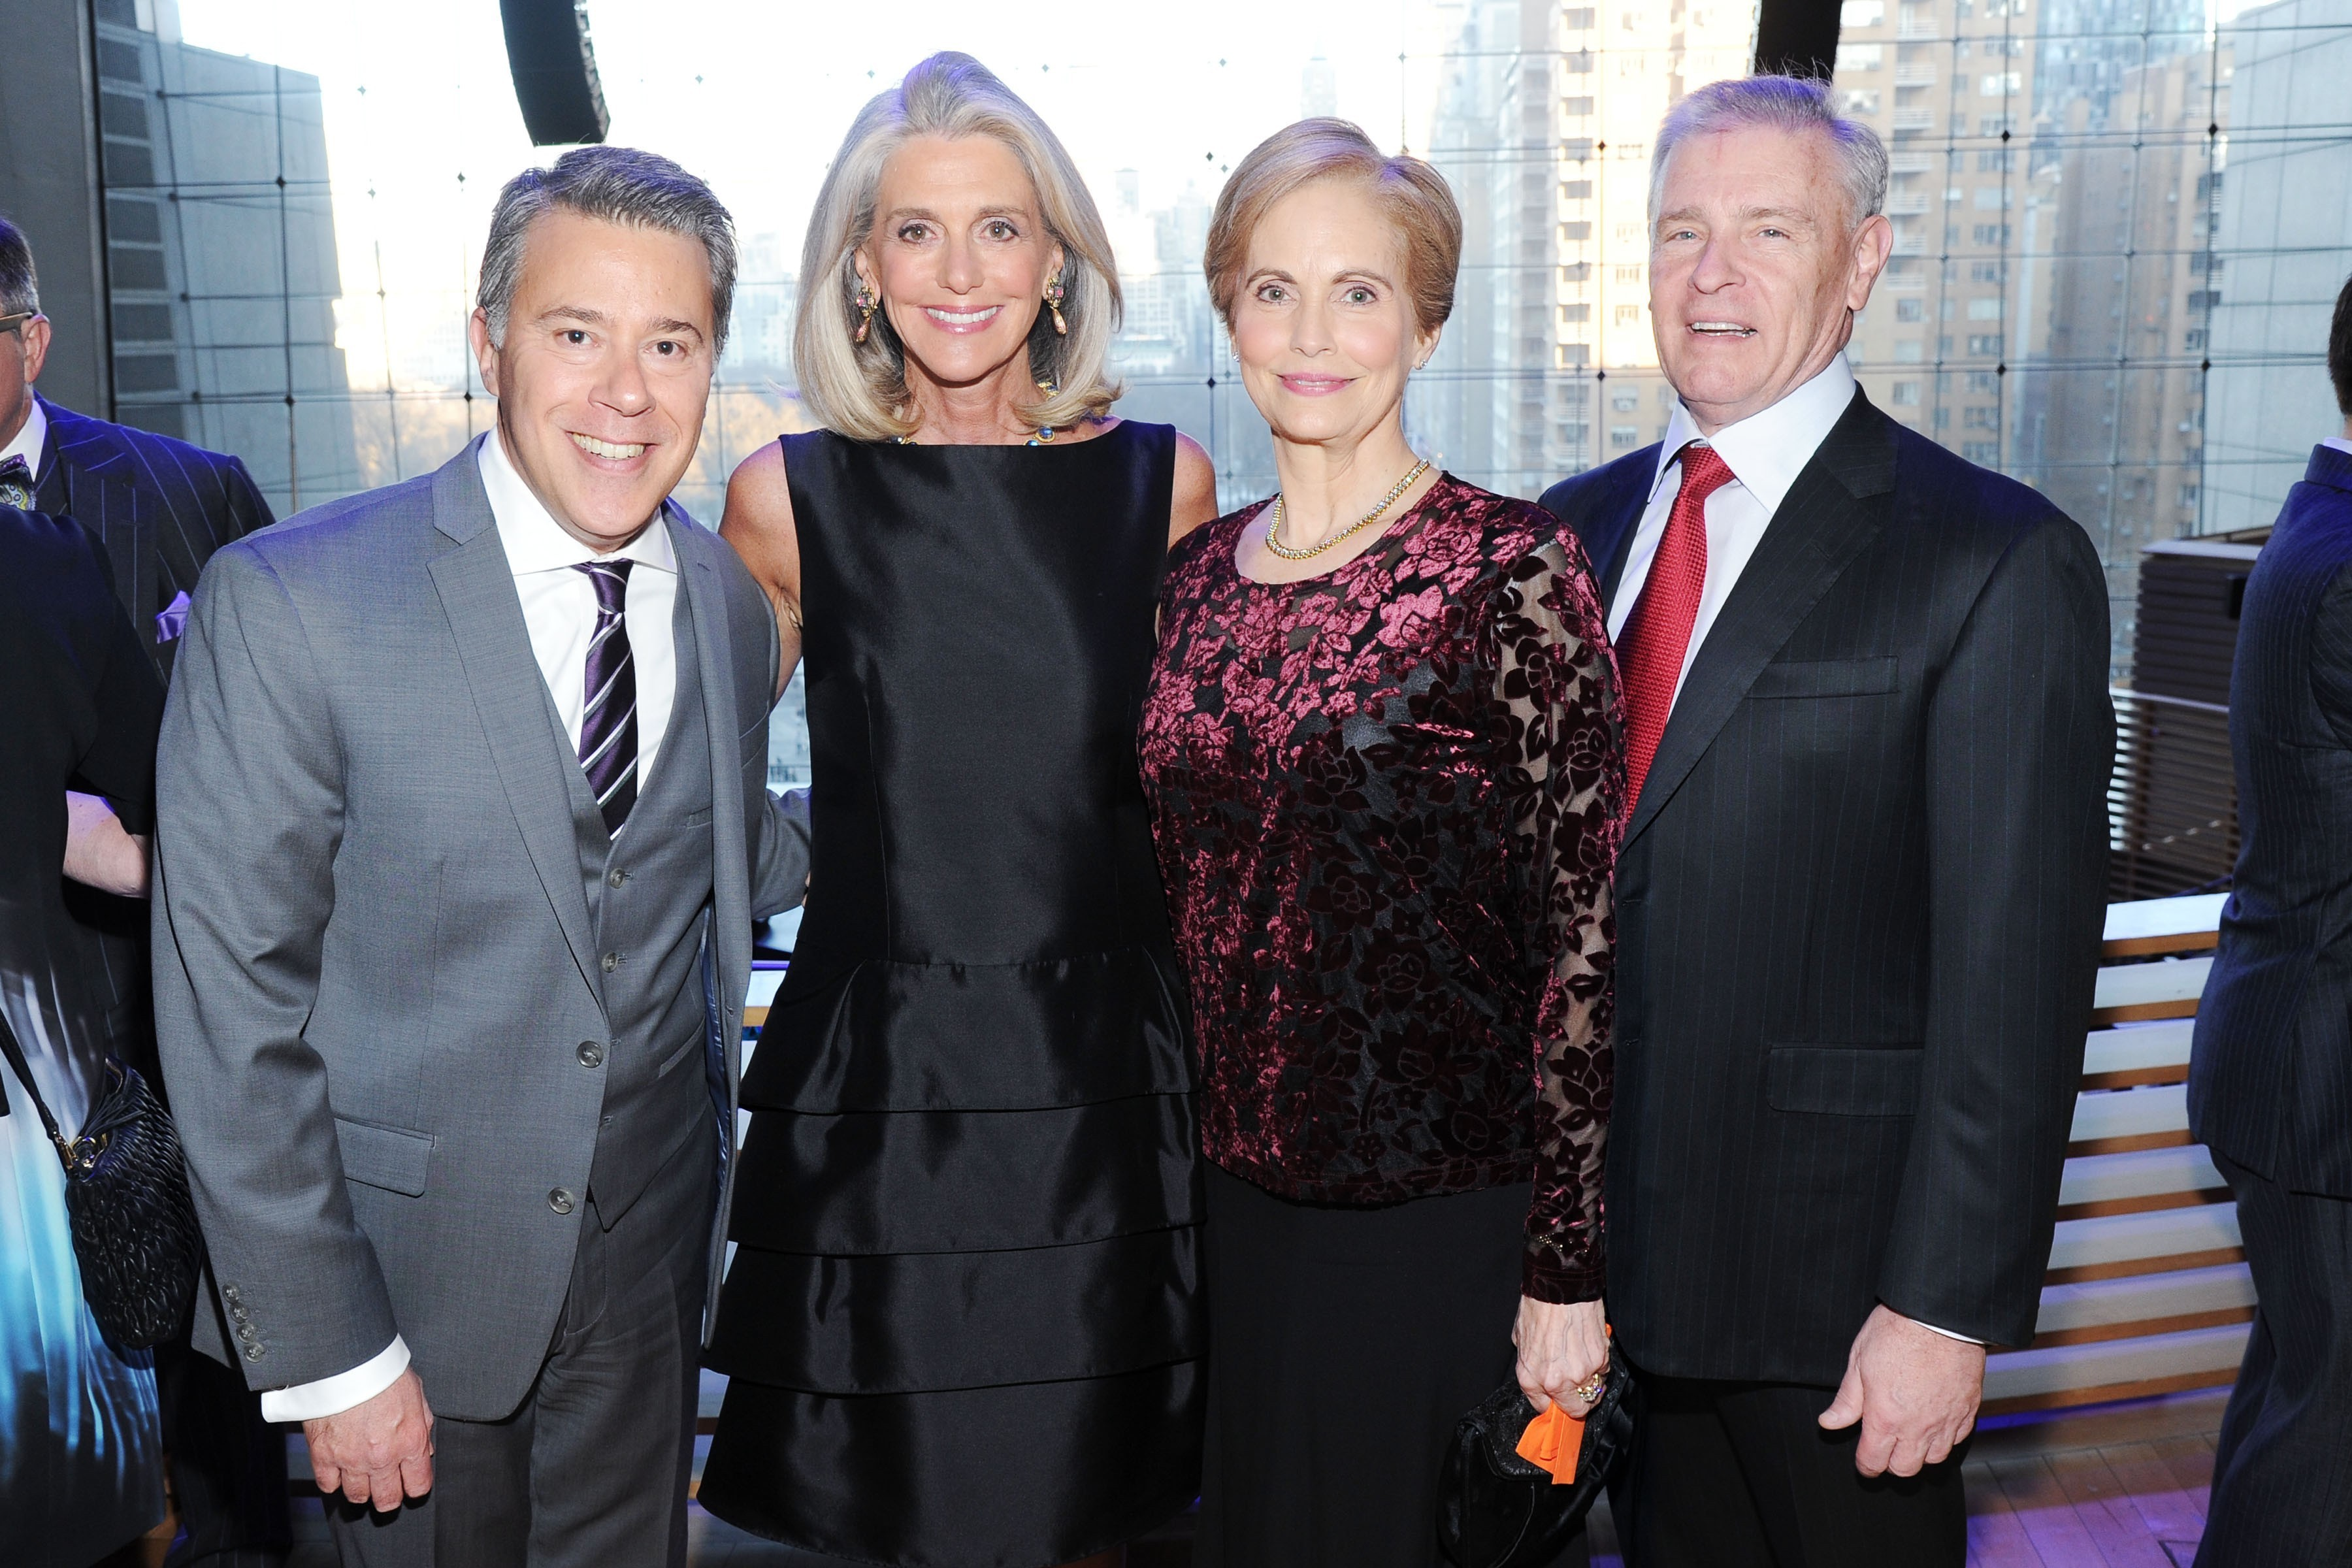 Russell Granet, Ann Unterberg, Diana Peterson and Joel Peterson at Lincoln Center Education Gala (Photo: Patrick McMullan).